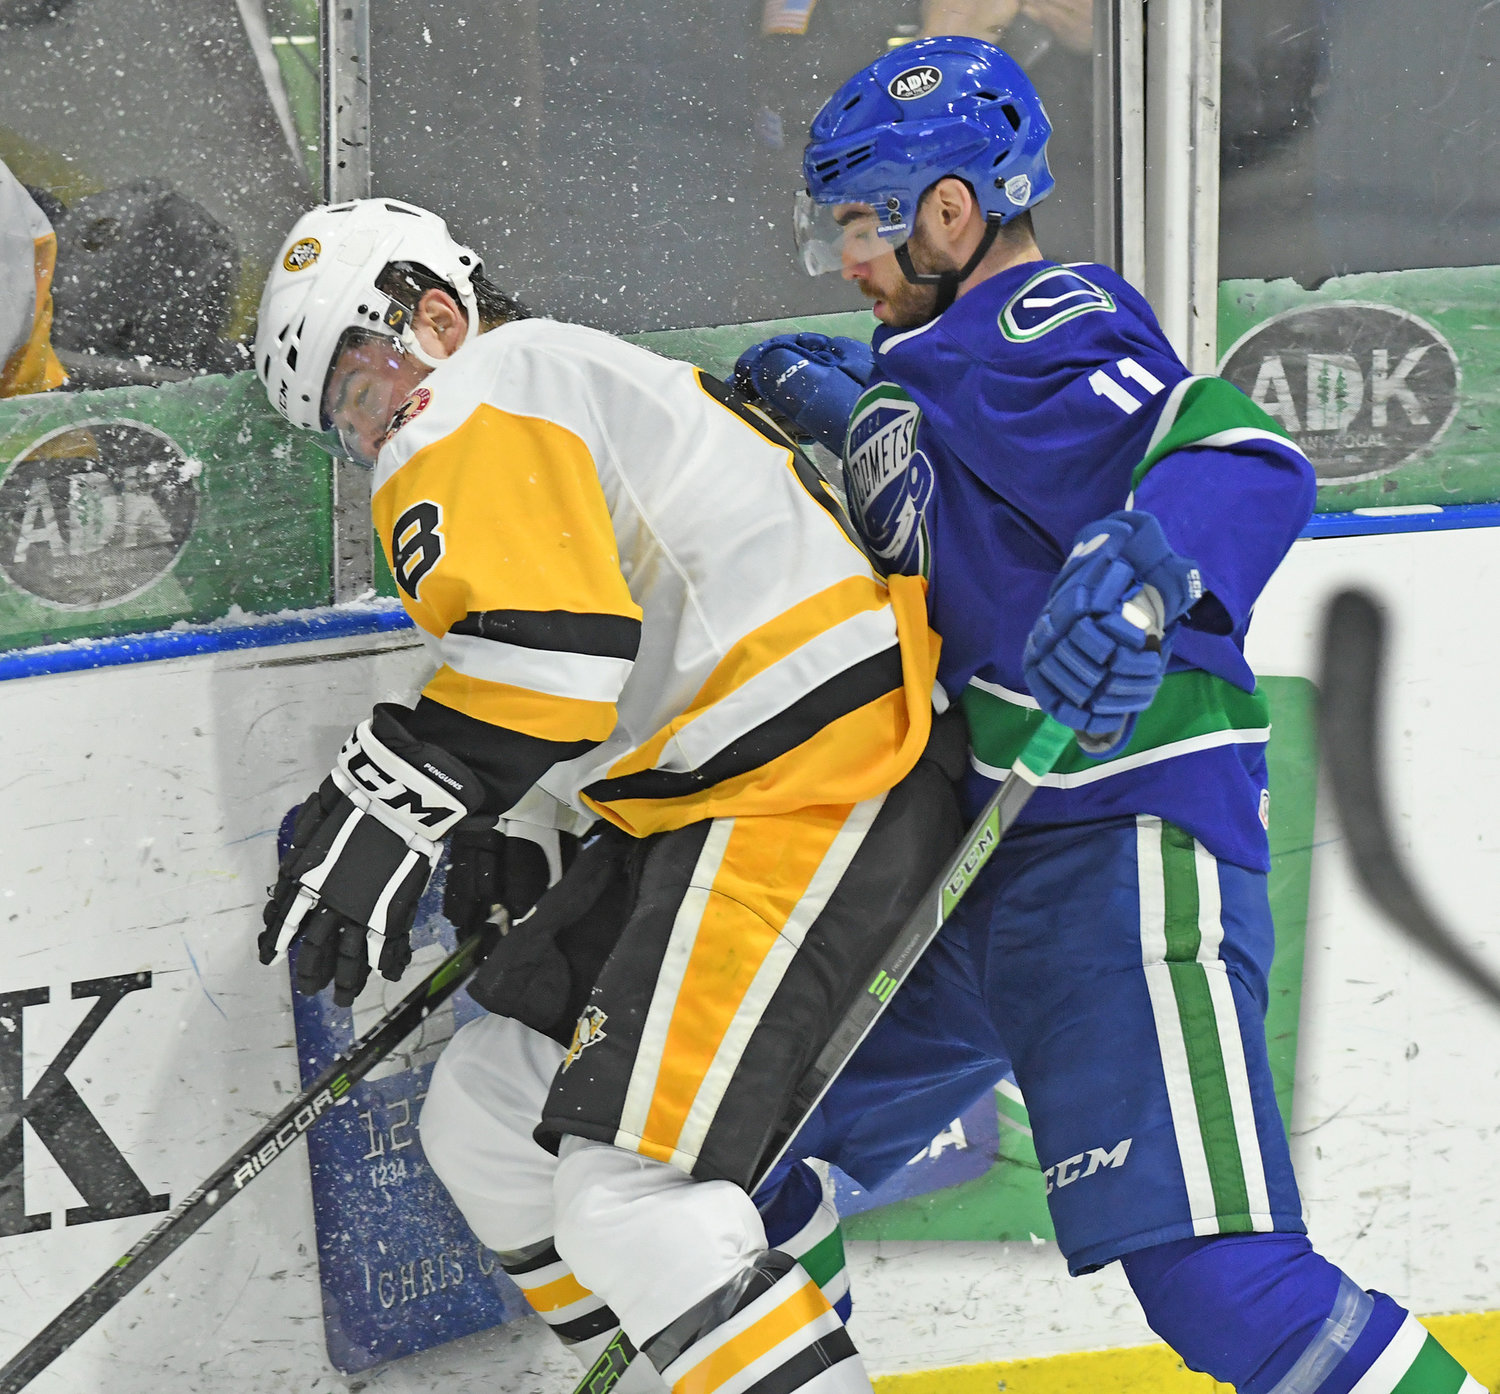 BIG HIT — Cam Darcy of the Comets crushes Wilkes-Barre/Scranton defender Michael Kim into the boards during a rough game Friday night at the Utica Aud. Darcy got into the first of seven fights in the game, an 8-1 win for the Comets.